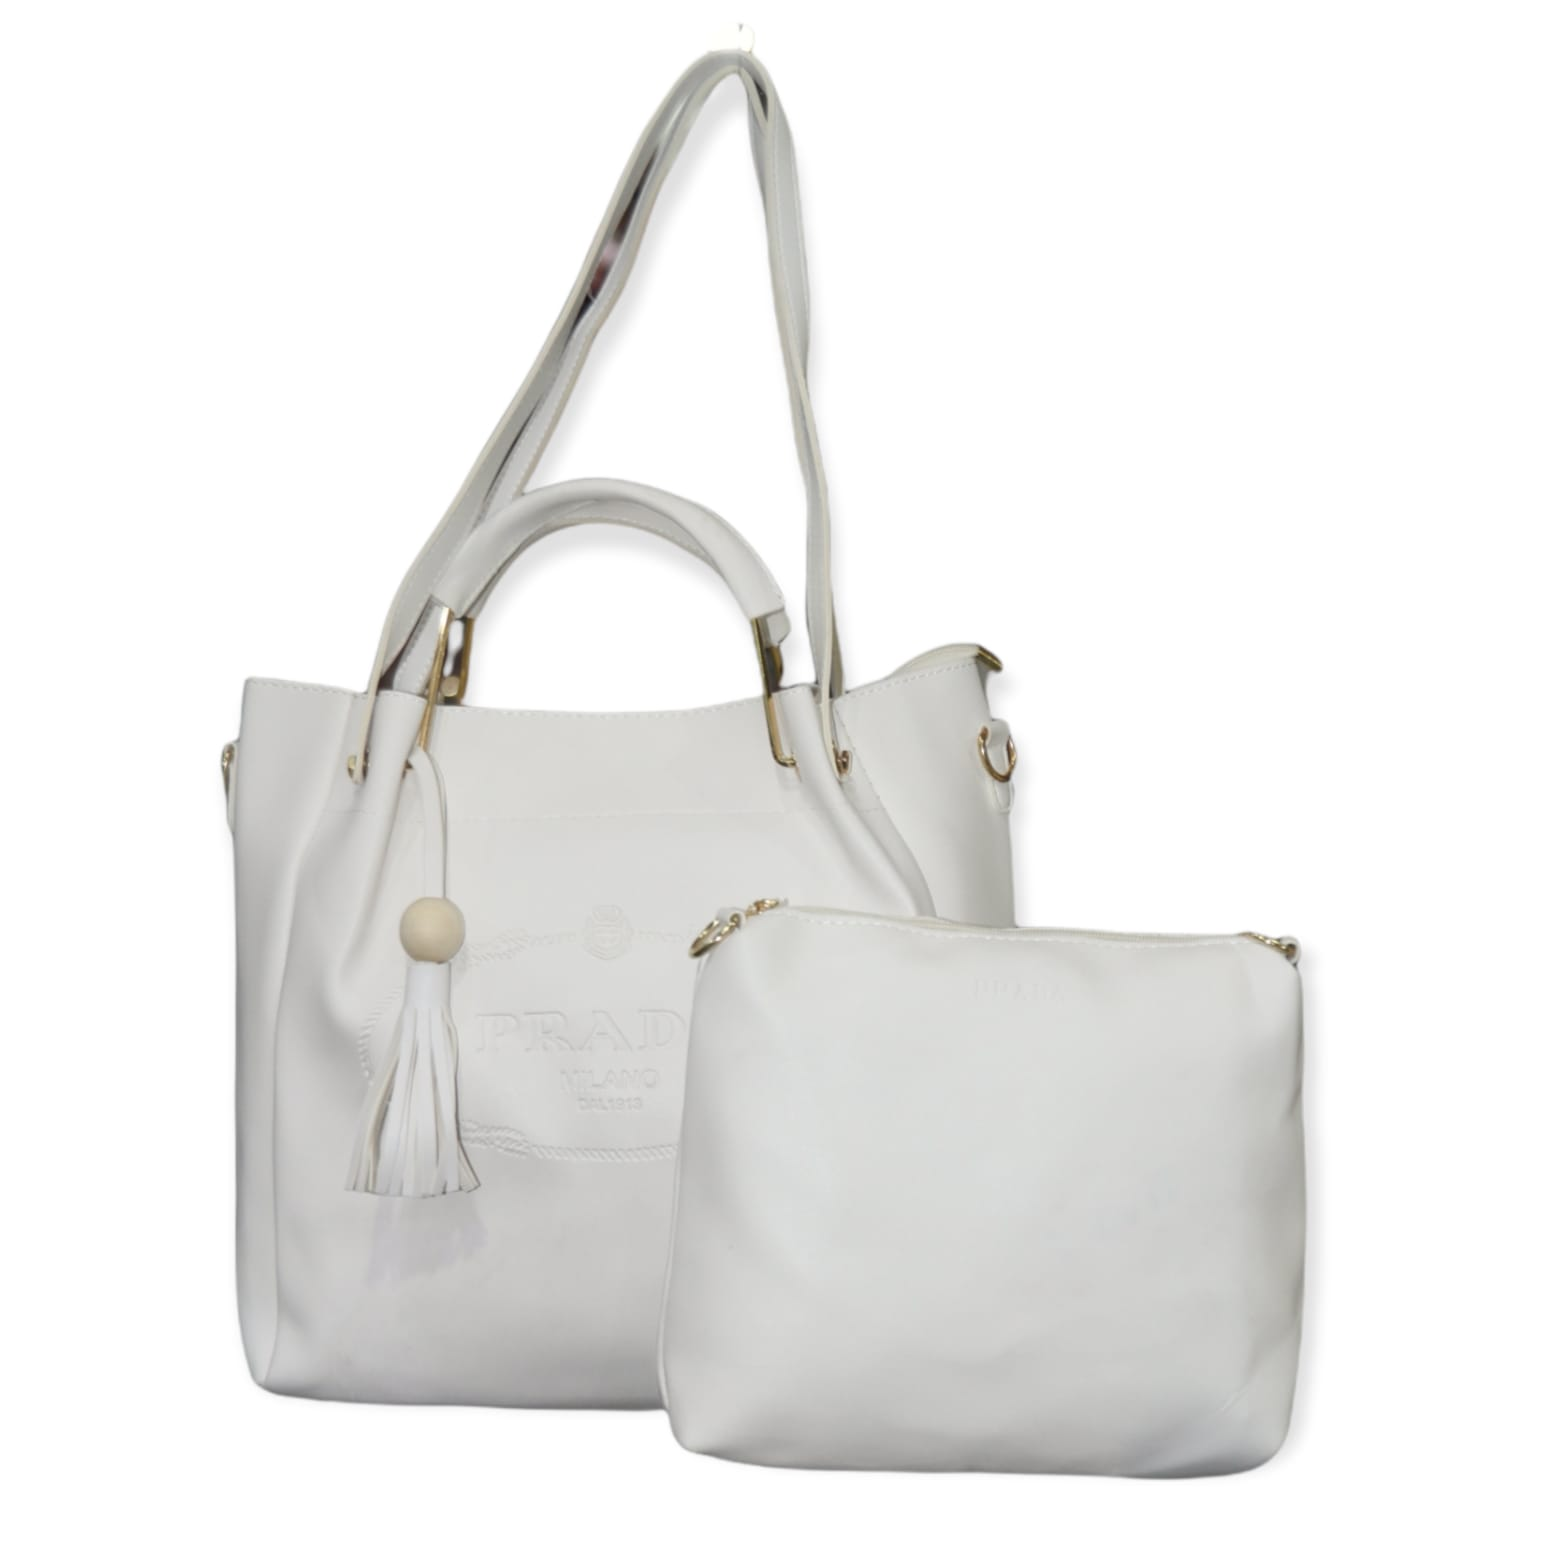 2 in 1 white Handbags for Girls, Women, Ladies, Tote Bag, Purse and Shoulder Bag